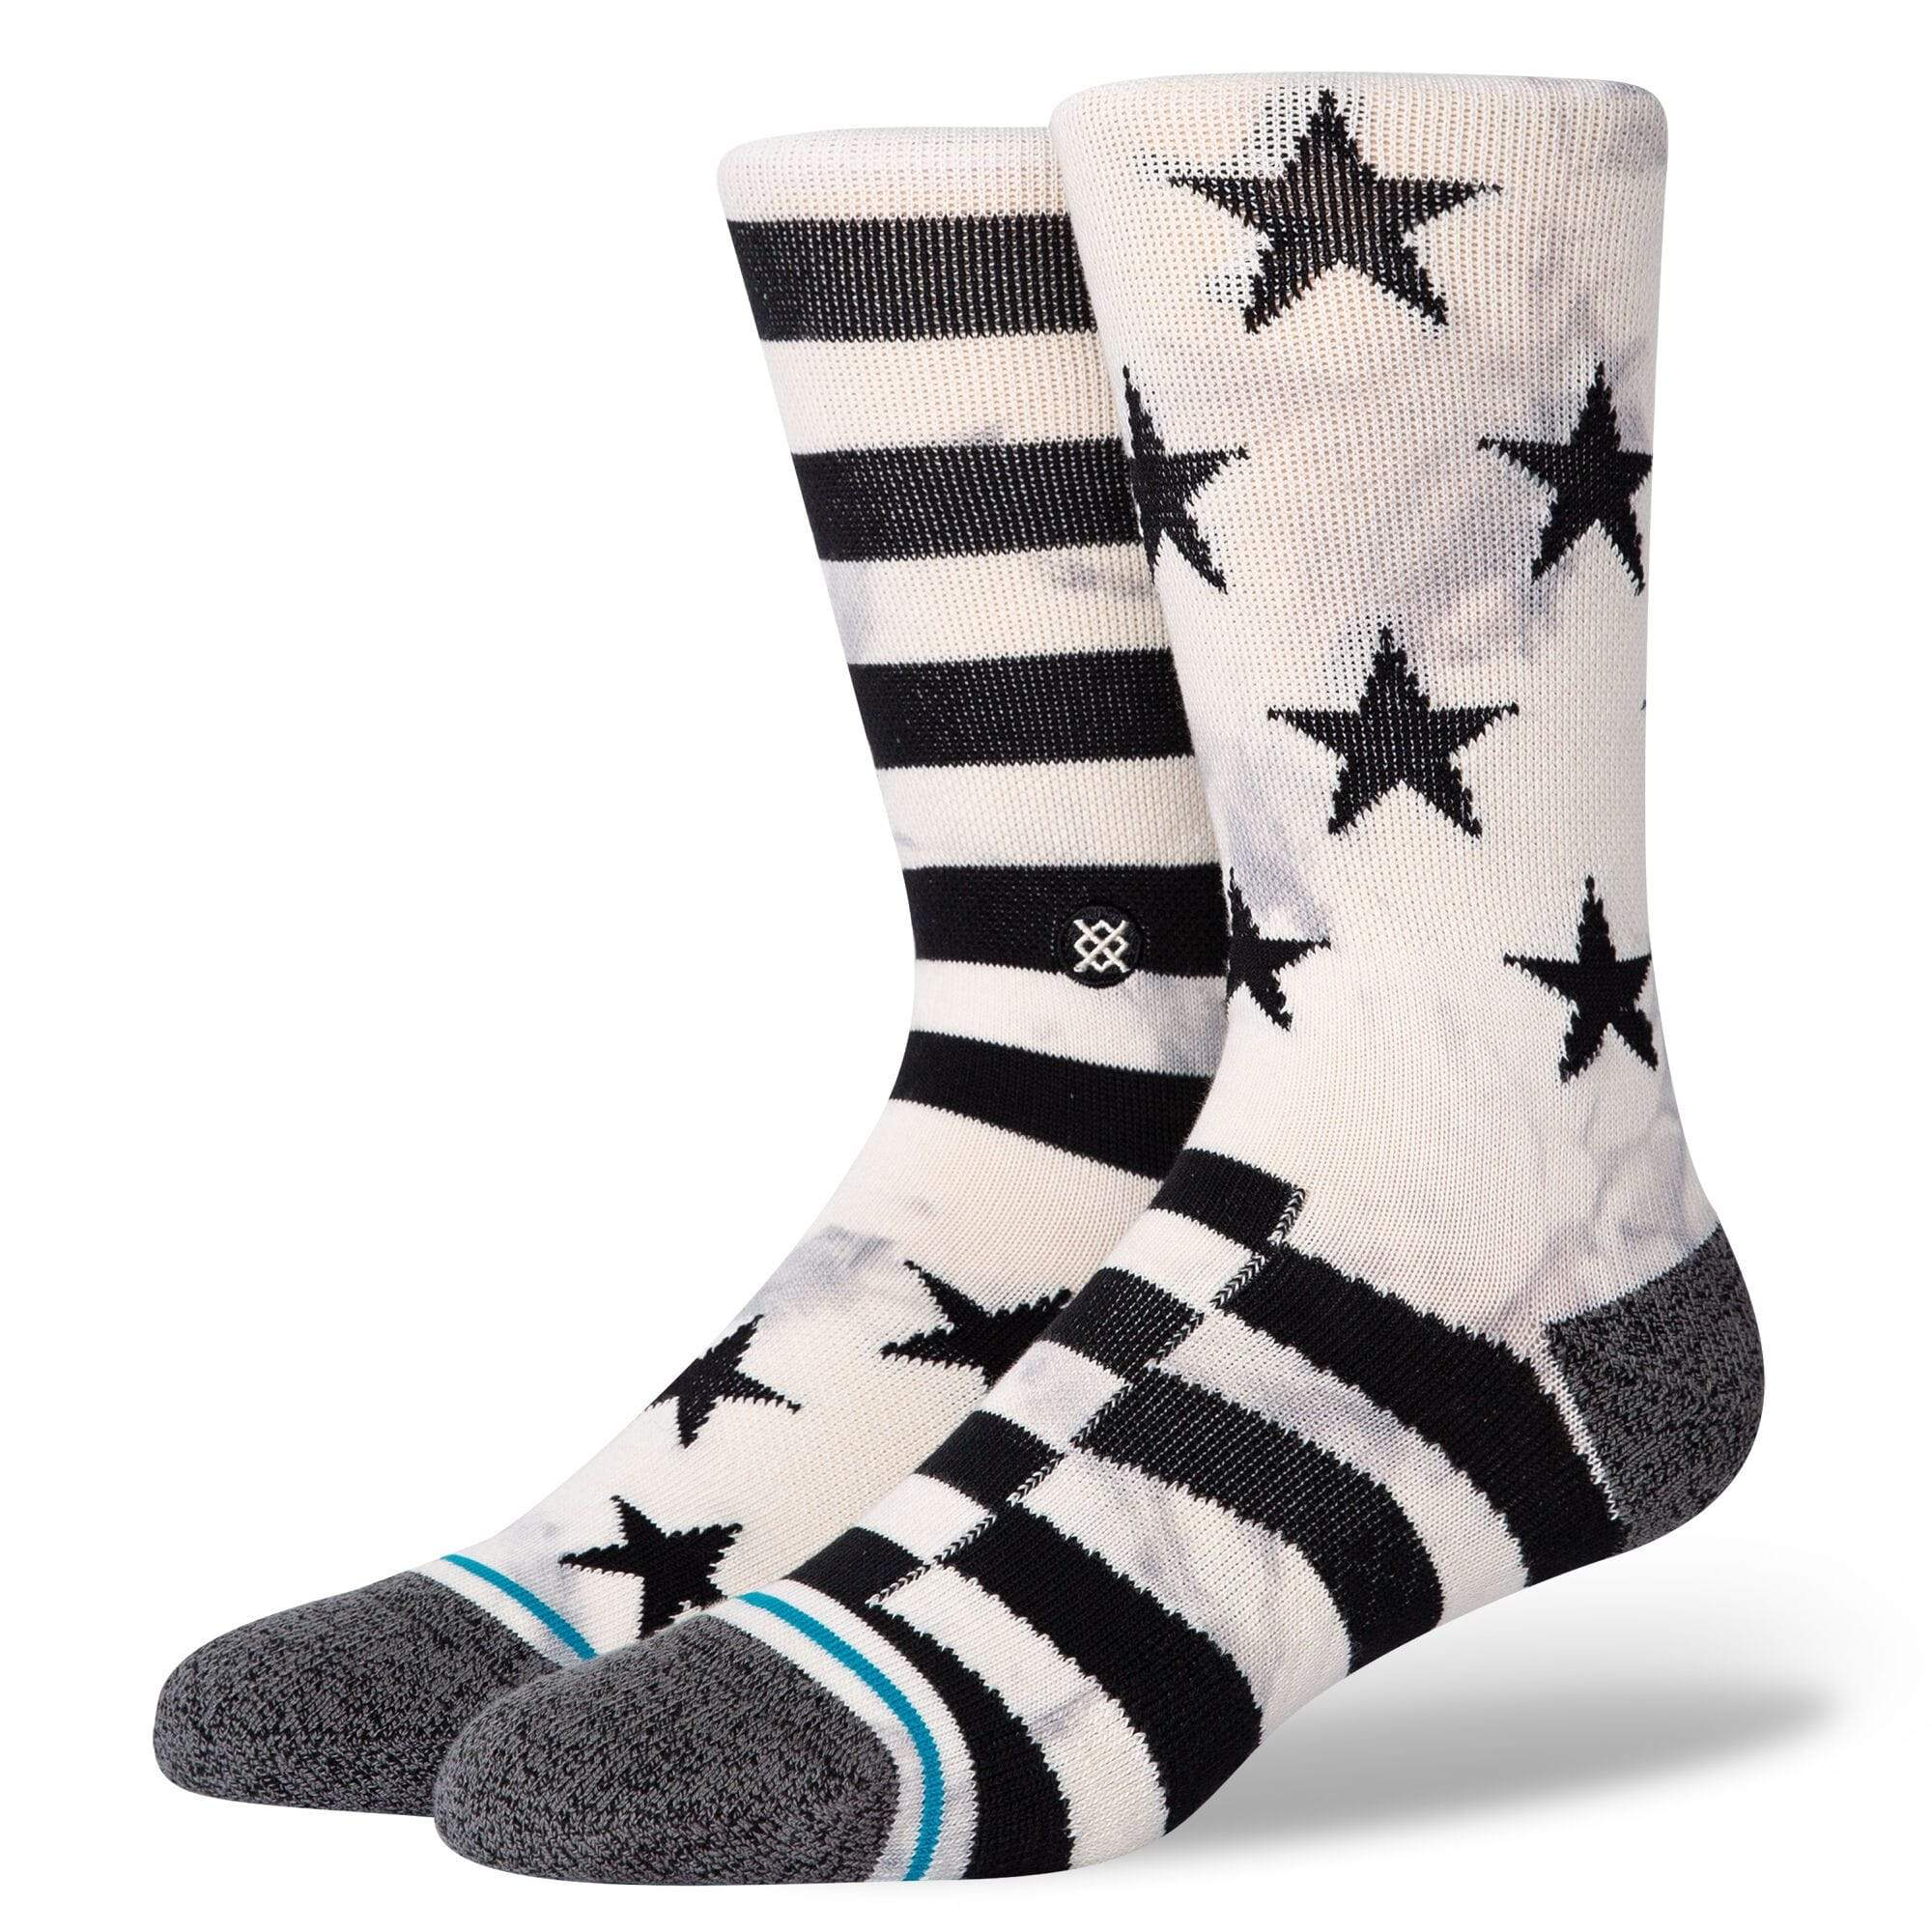 Sidereal 2 Men's Crew Sock Muted stars and Stripes